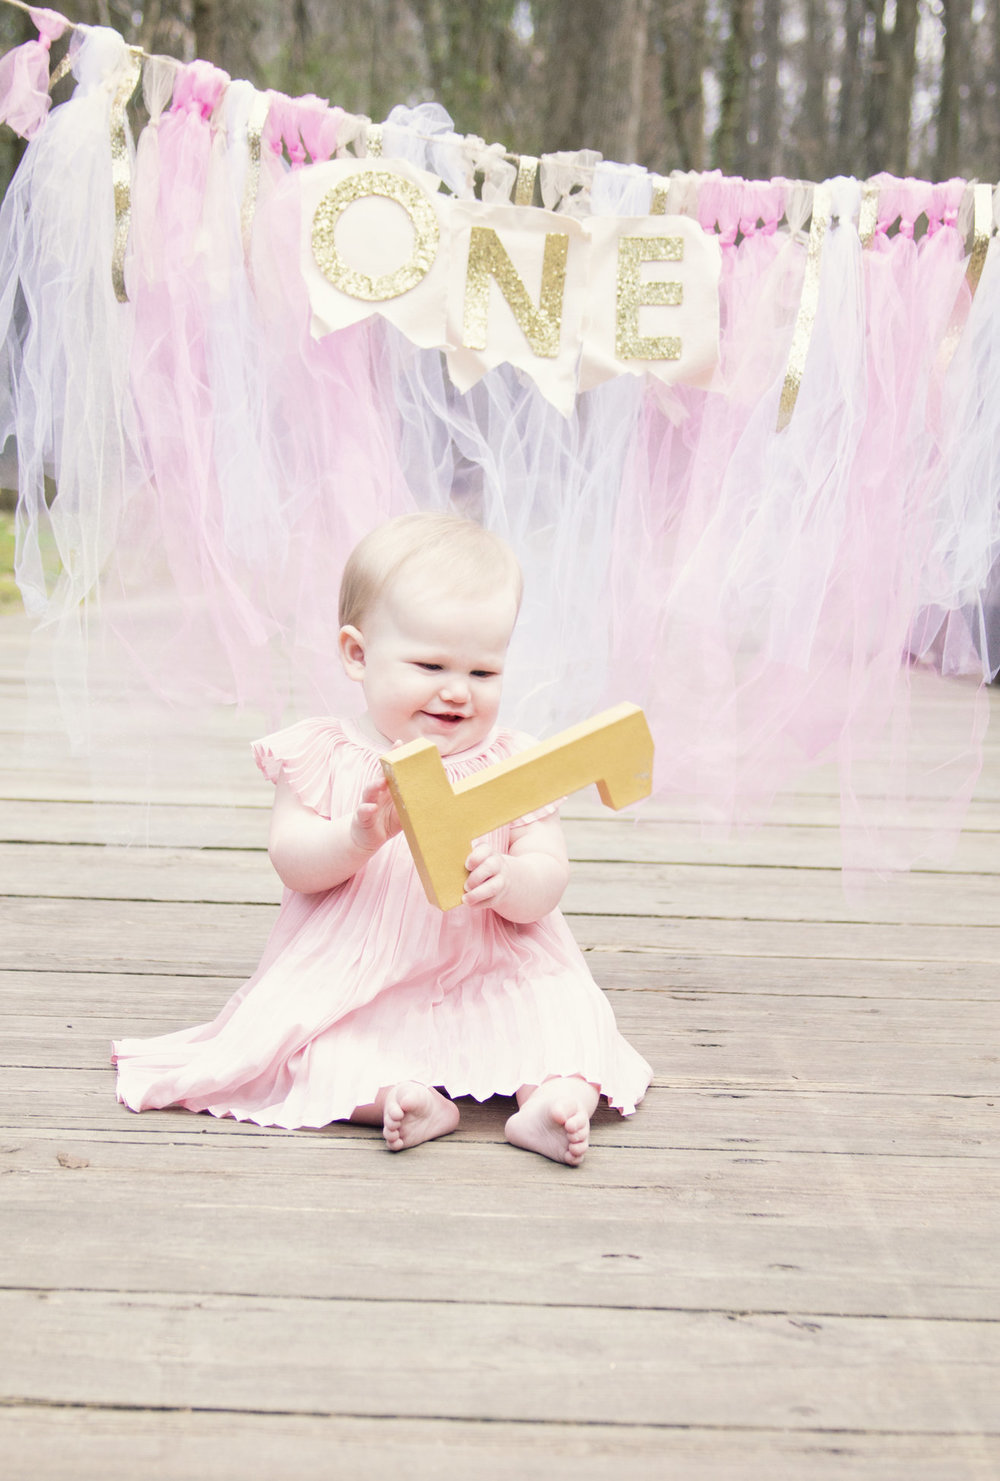 greensboro-nc-childrens-photographer-first-birthday-milestone3.jpg